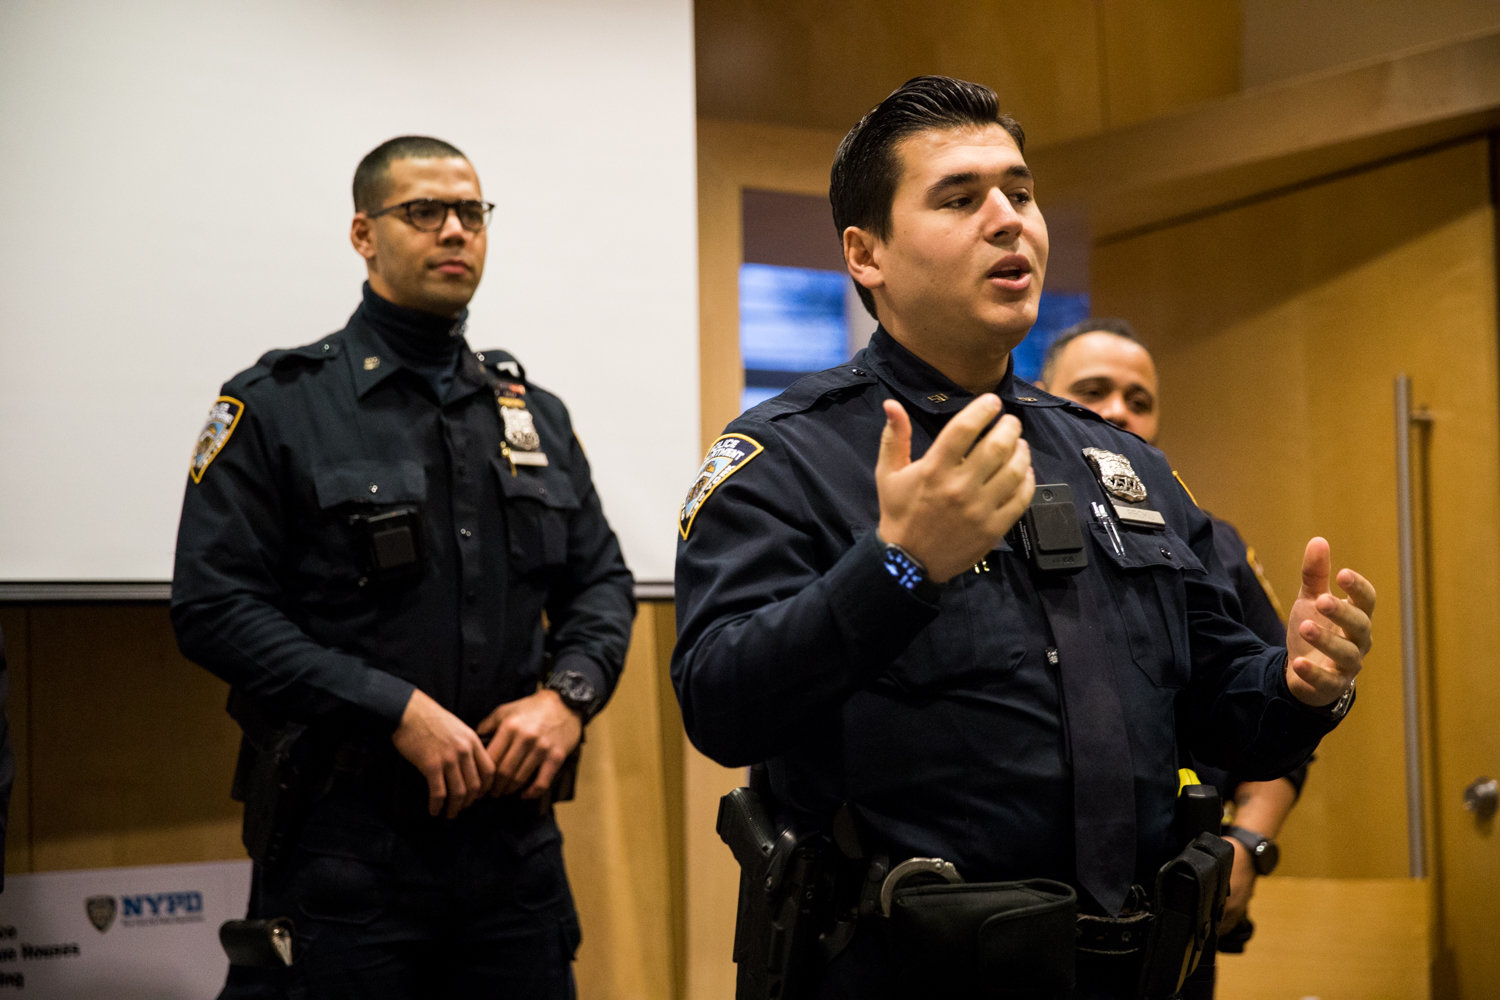 Neighborhood coordination officer Klaudio Rroku gives opening remarks at the 50th Precinct's Feb. 12 'Build the Block' meeting at the Kingsbridge Library. There, Rroku and his fellow officers sought to hear about ways to improve their neighborhoods.